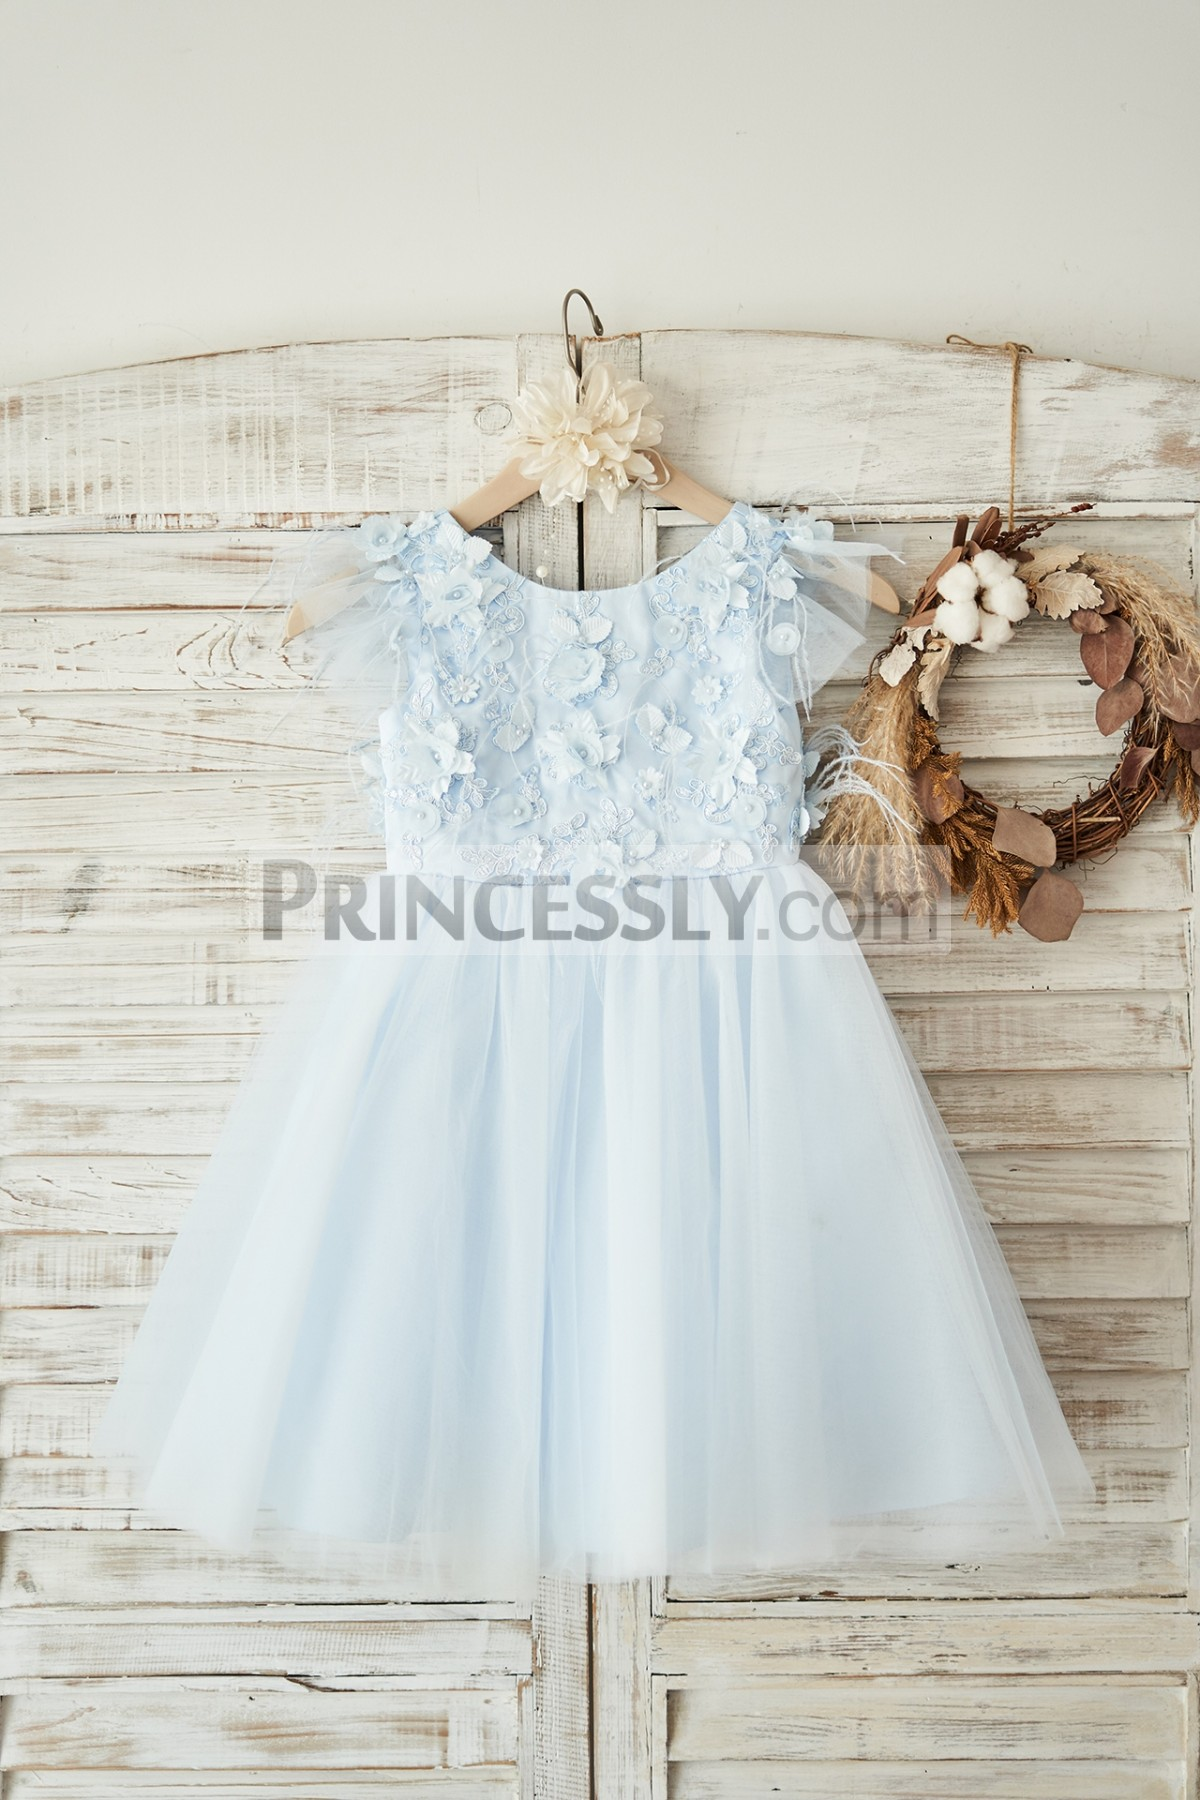 Princessly.com-K1004050-Blue Lace Tulle Cap Sleeves V Back Wedding Flower Girl Dress with Feathers-31